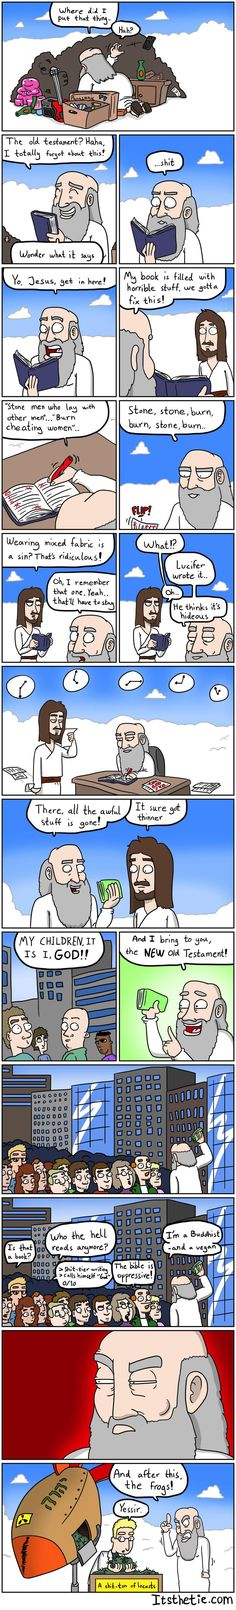 Adventures of God: the New Old Testament